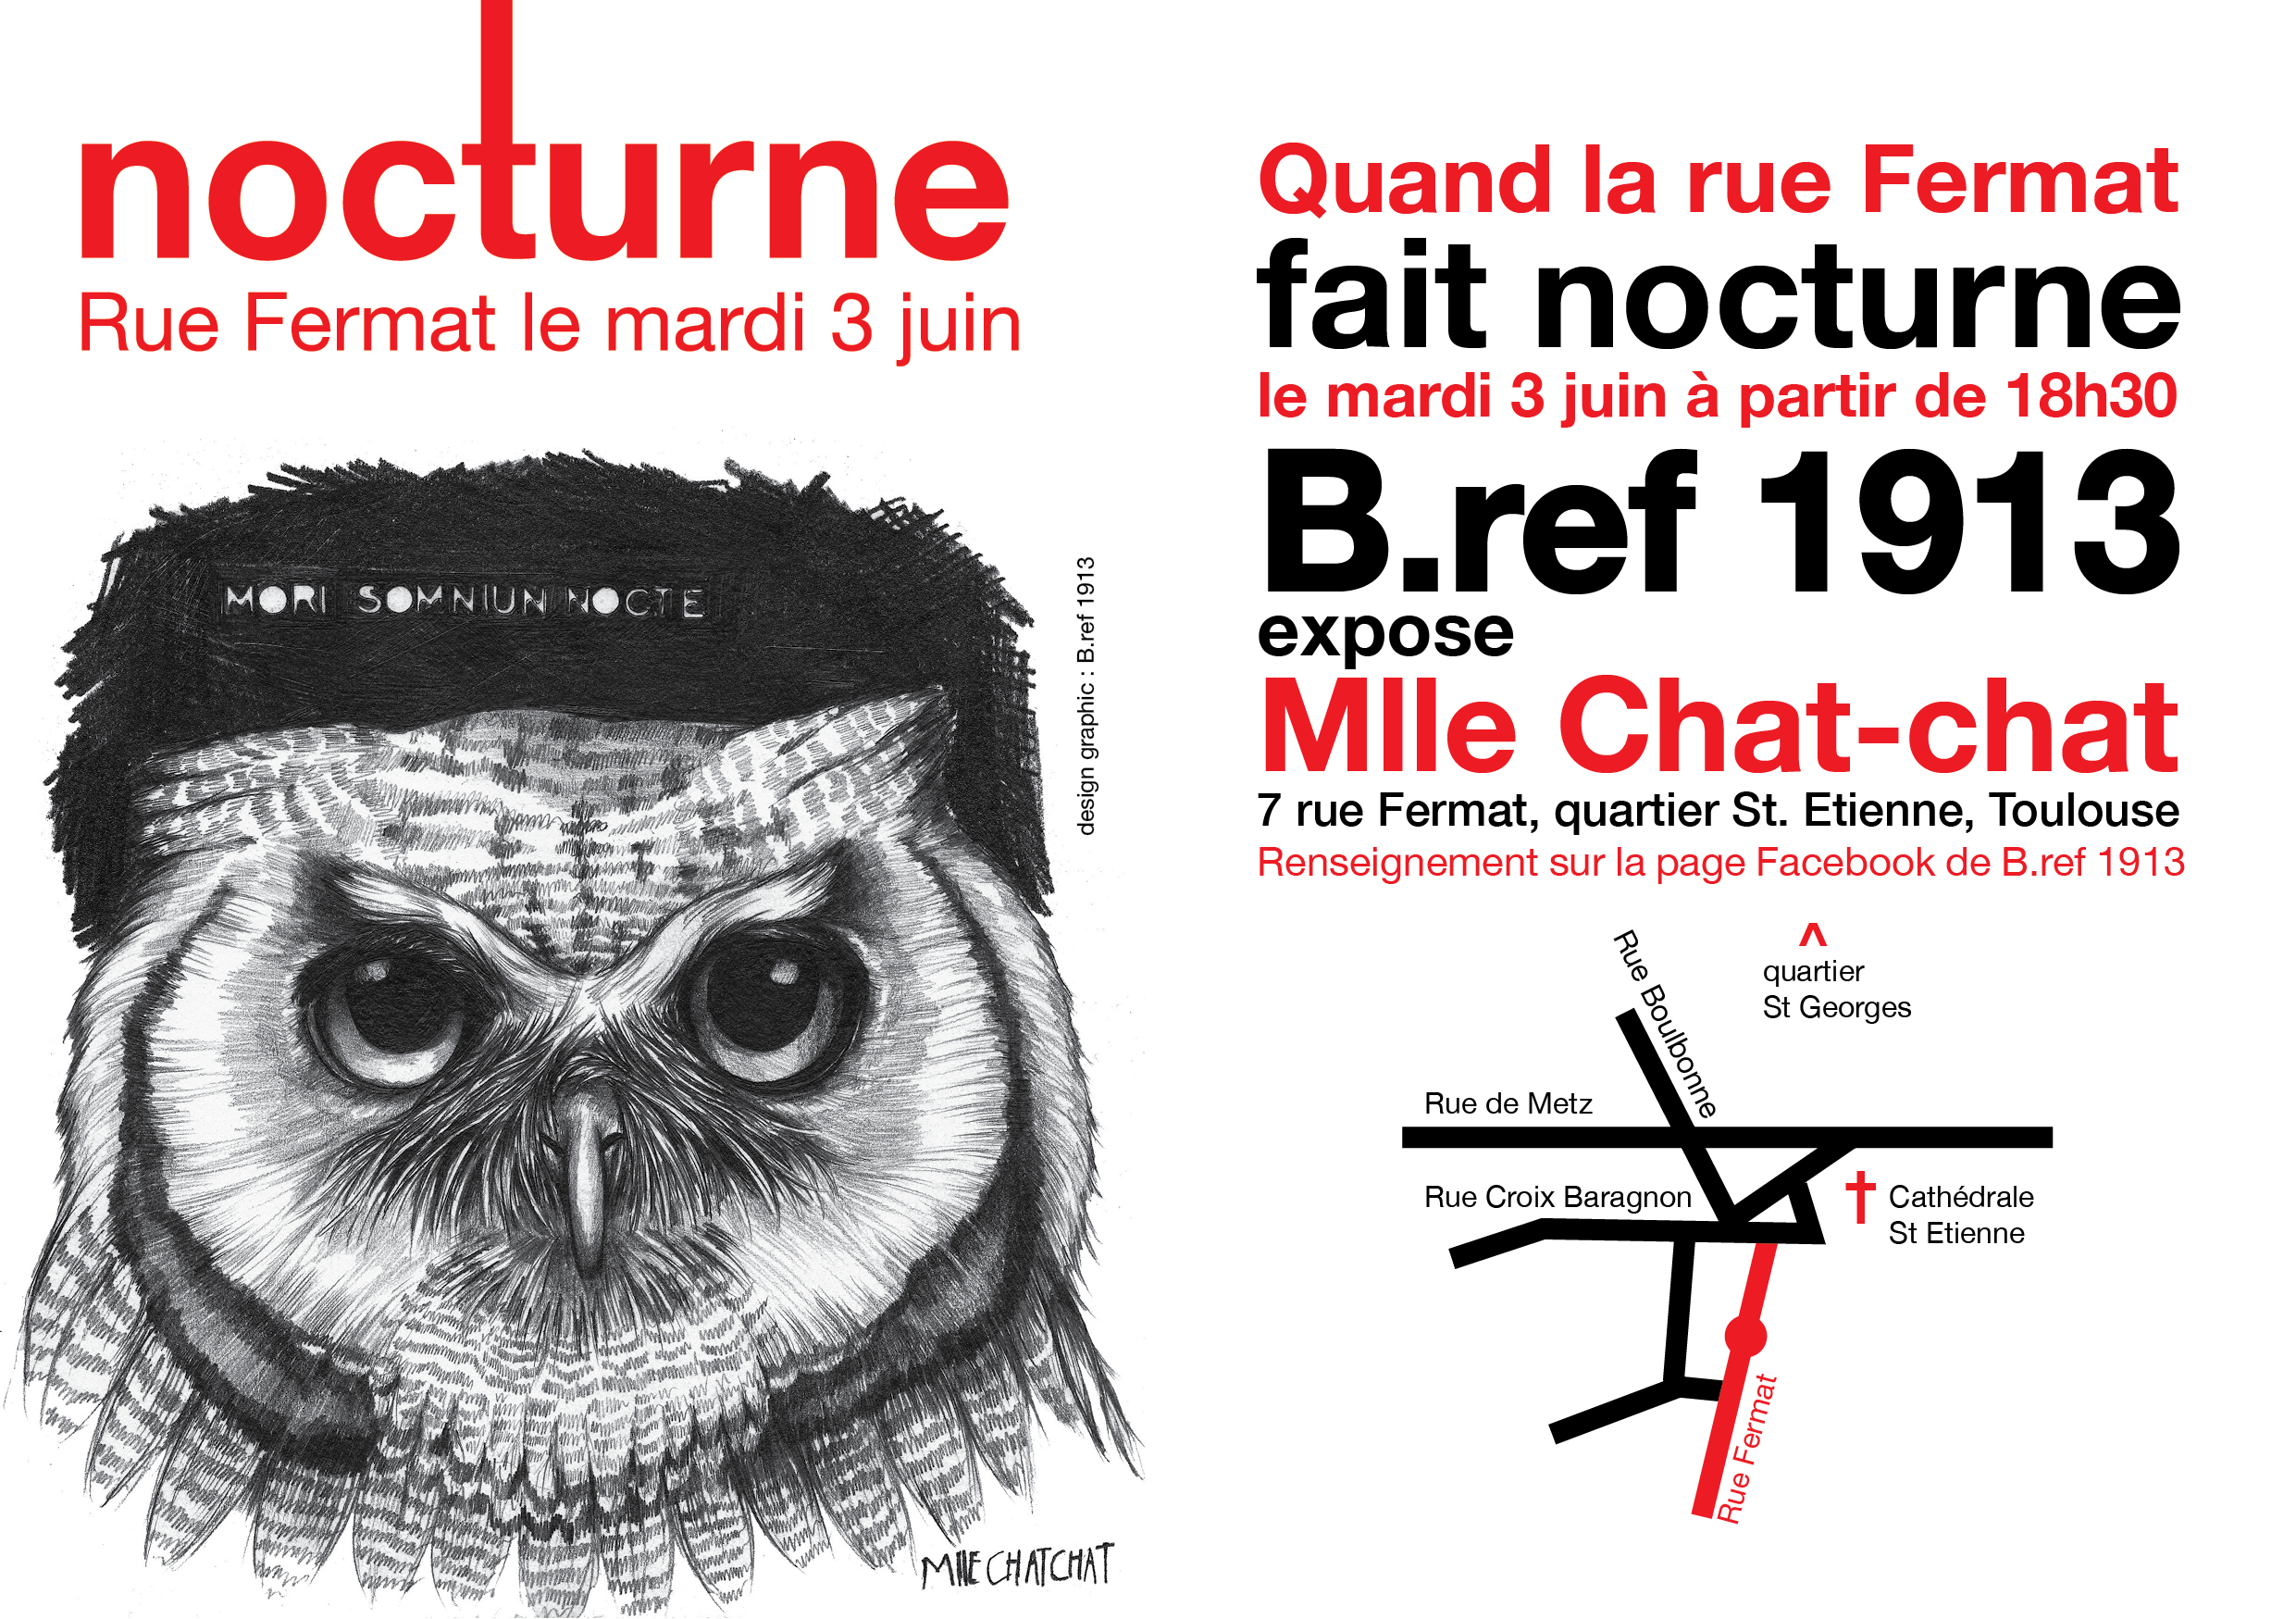 illustration-mllechatchat-exposition-nocturne-flyer-2014.jpeg